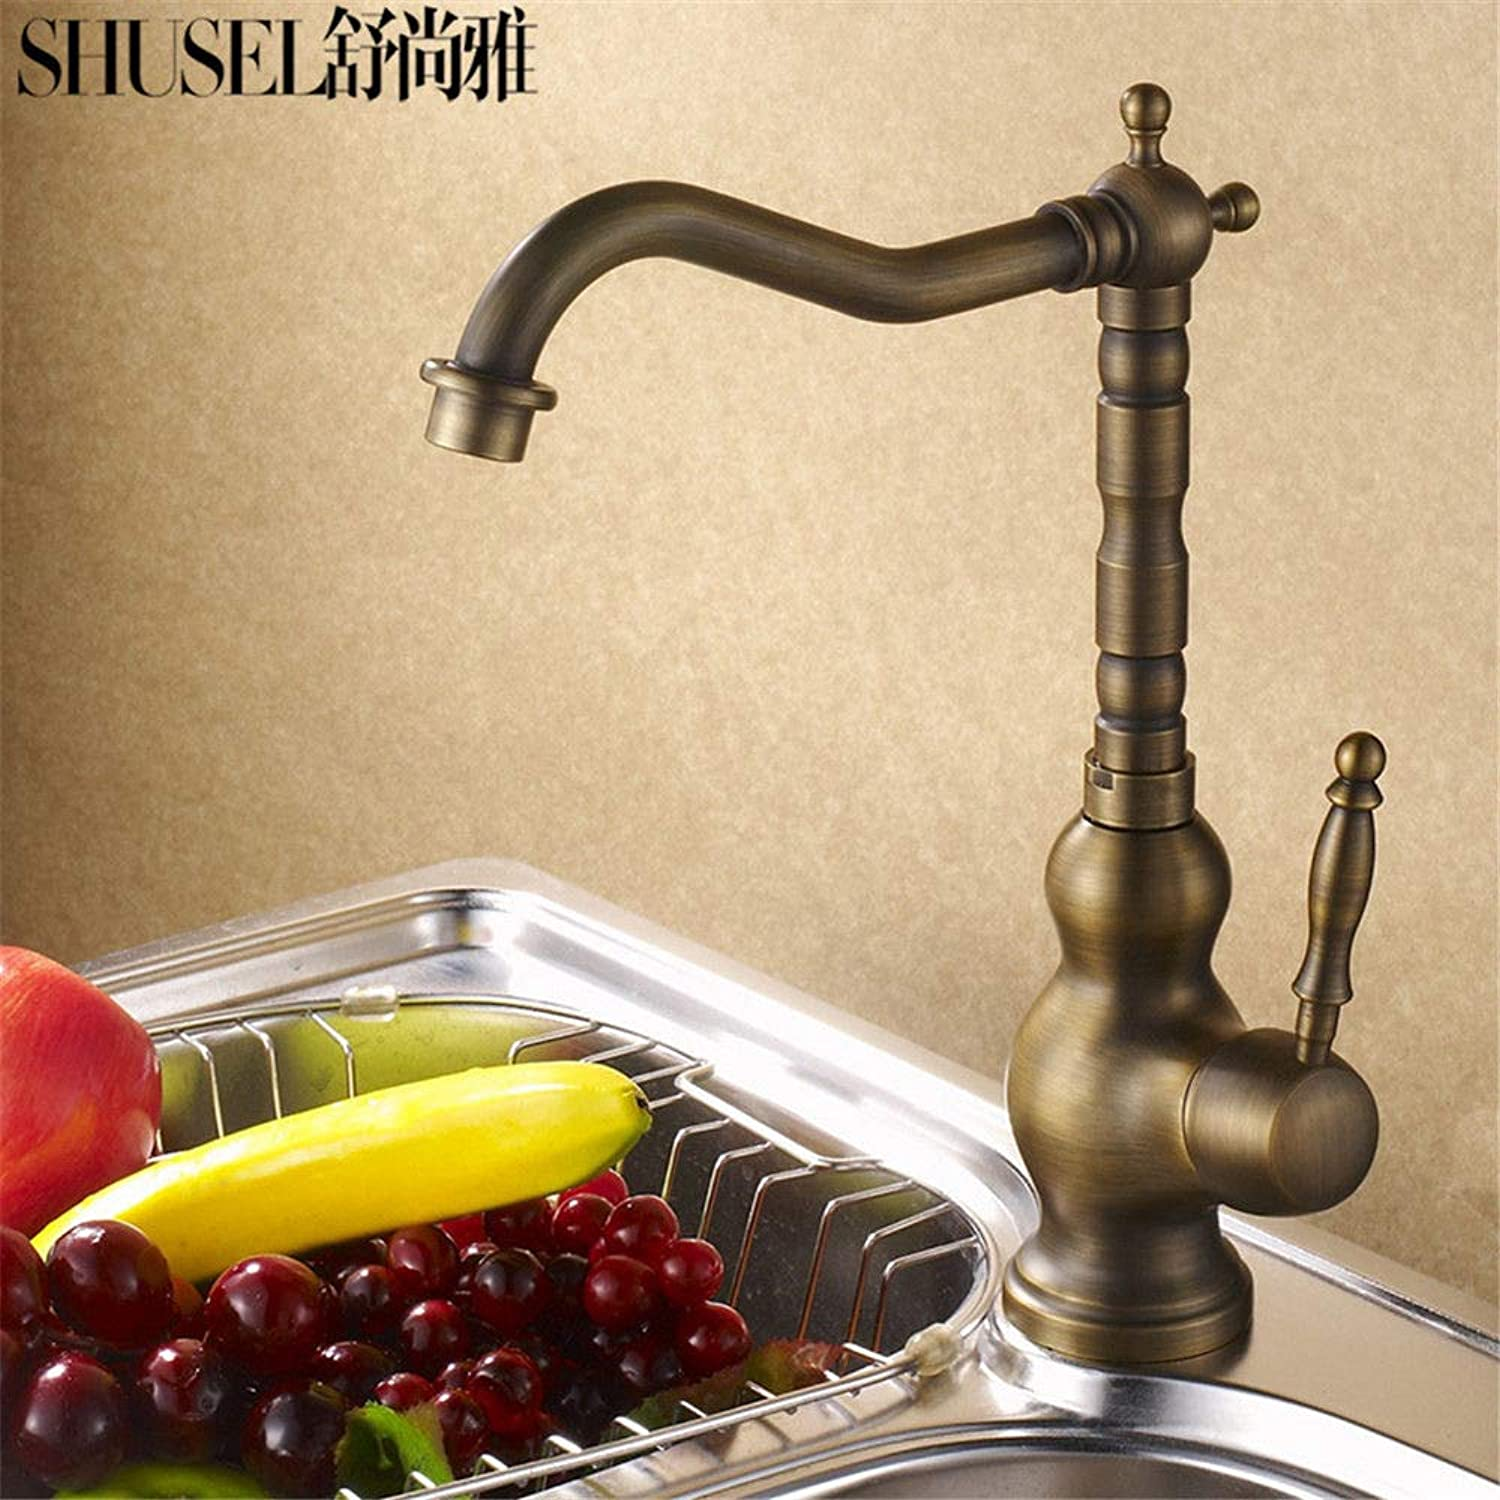 Commercial Single Lever Pull Down Kitchen Sink Faucet Brass ...